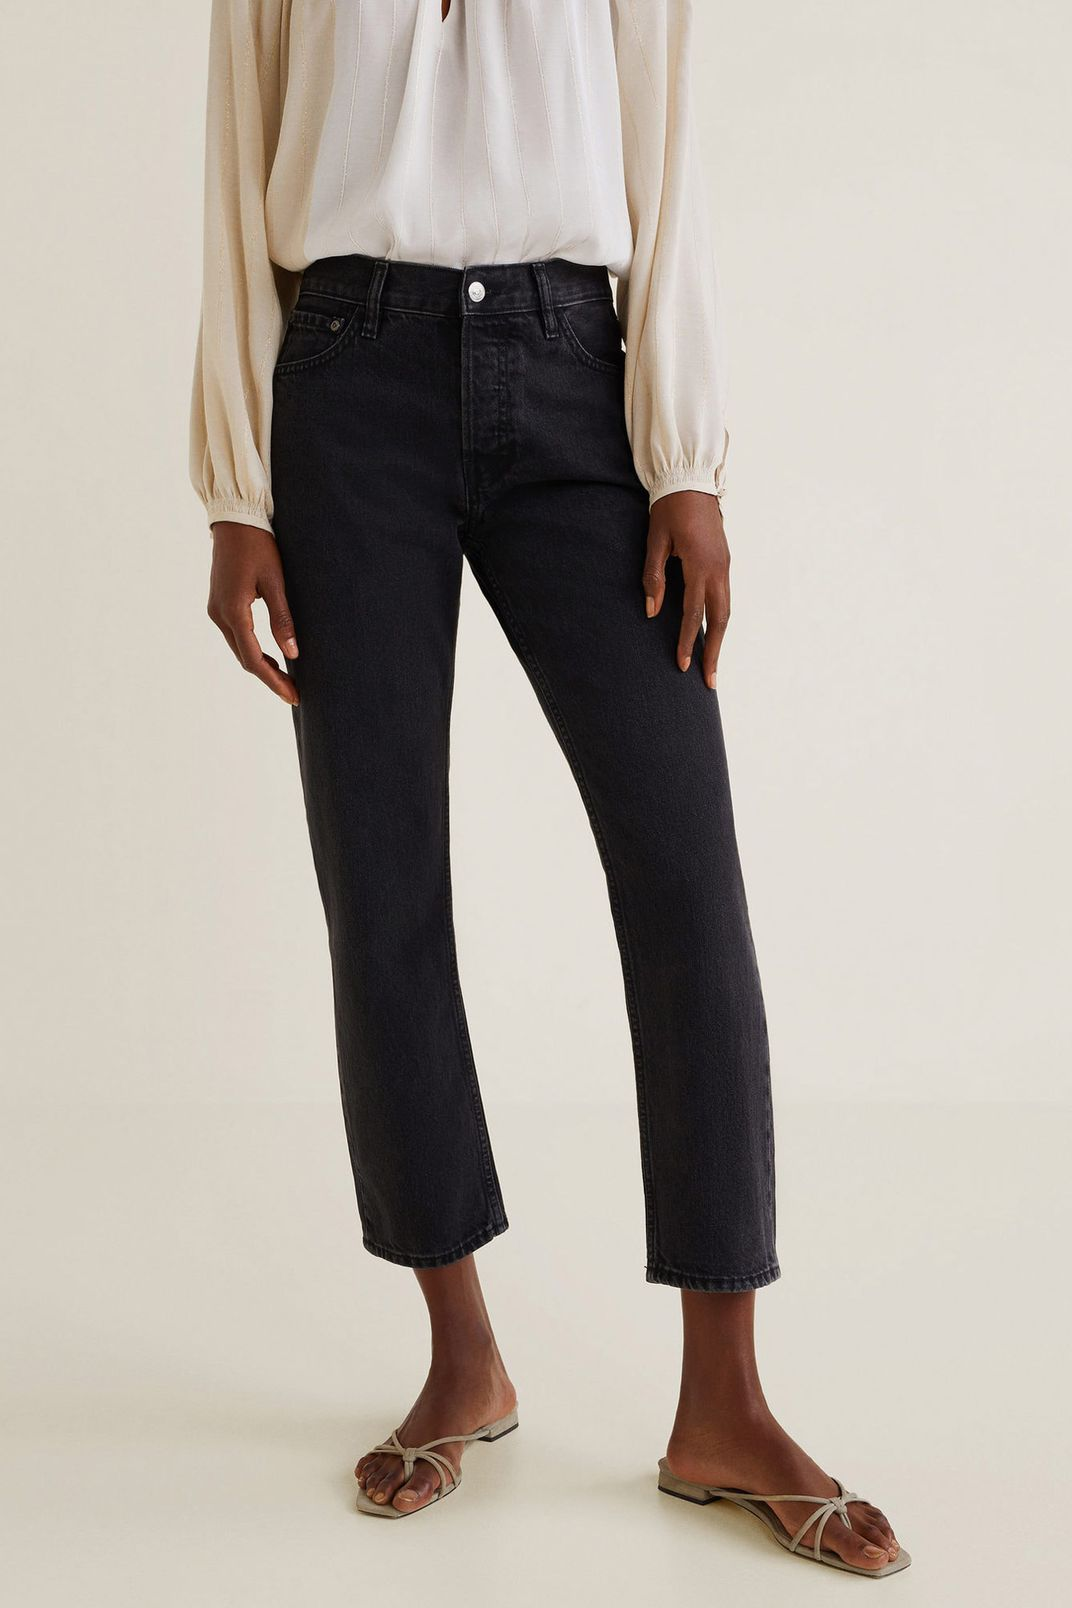 Mango Organic Cotton Straight Jeans